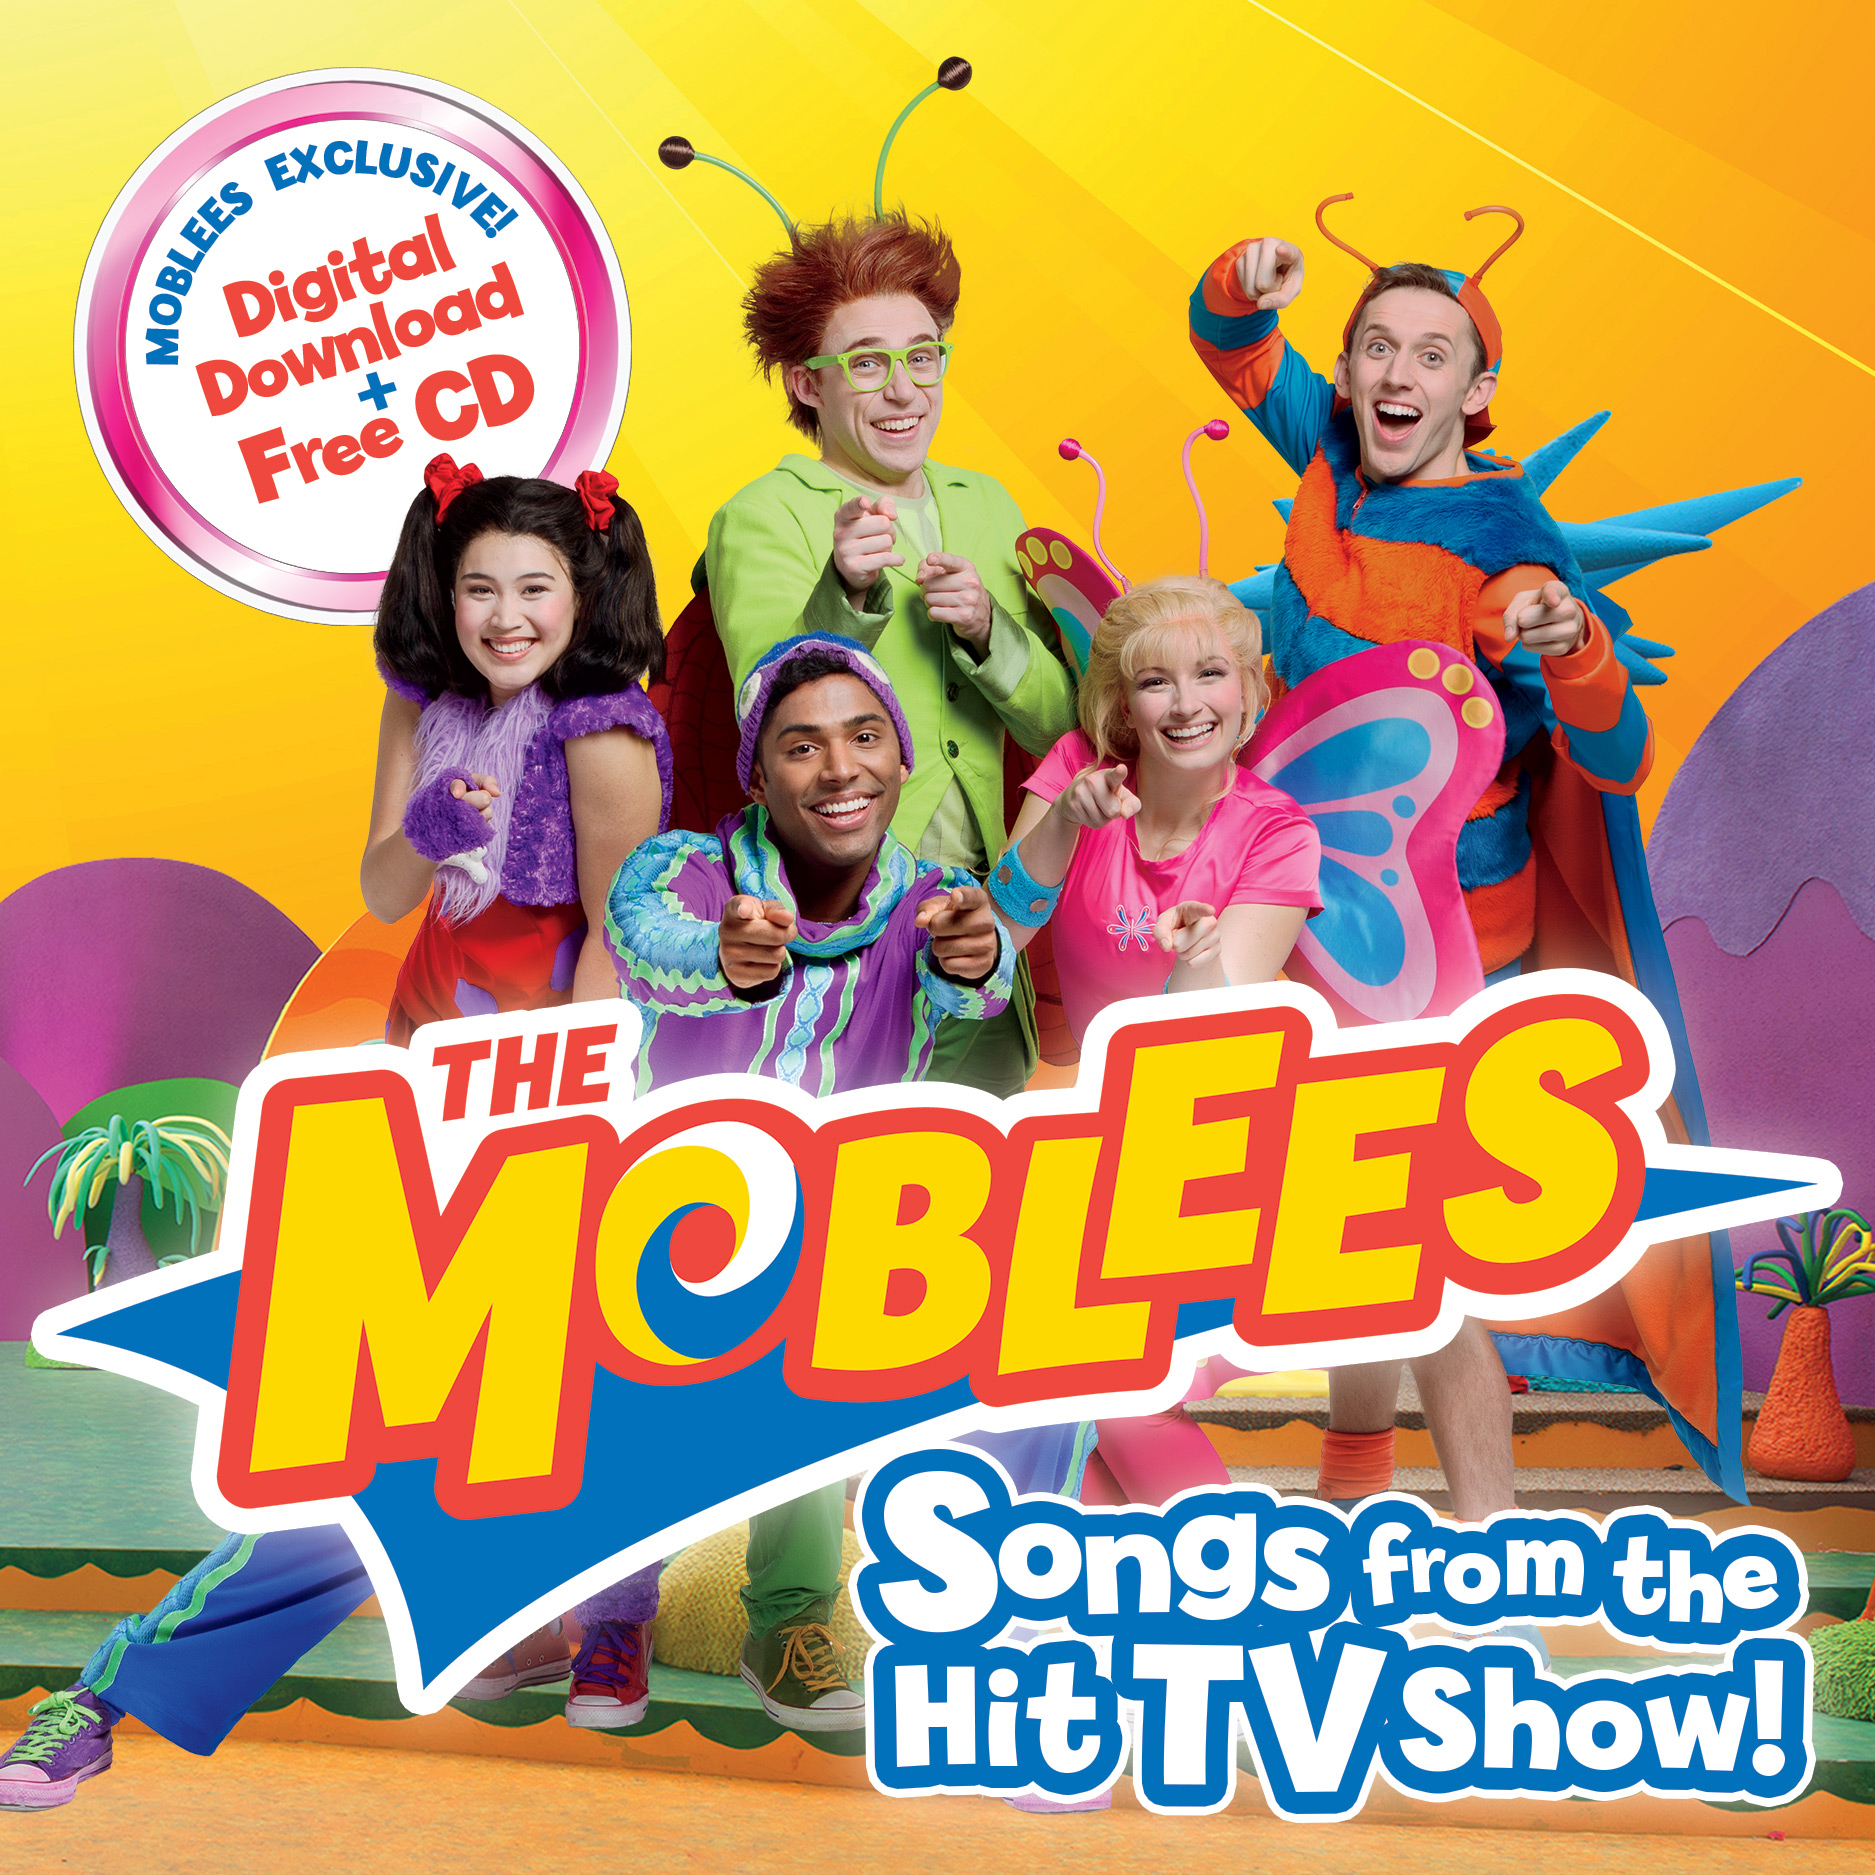 The Moblees: Songs from the Hit TV Show!